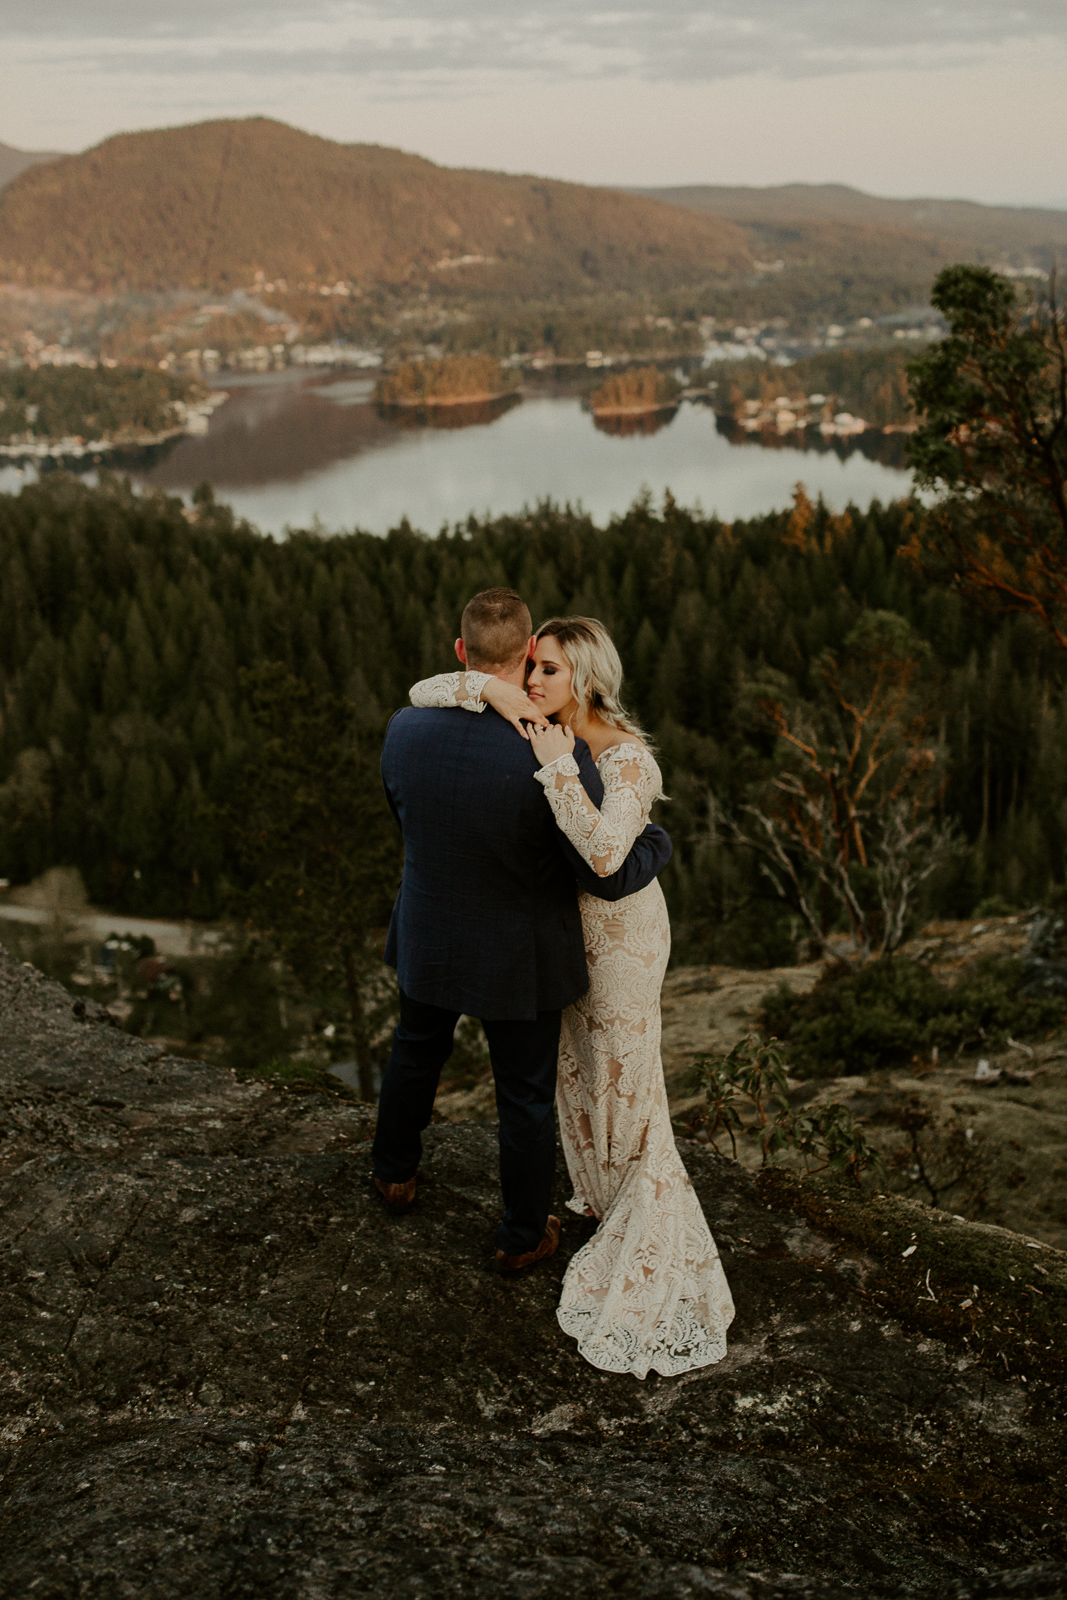 Luke Lambertson Photo_BritishColumbia_Canada_AdventurousCouple_Elopement_IMG-8542-2.jpg